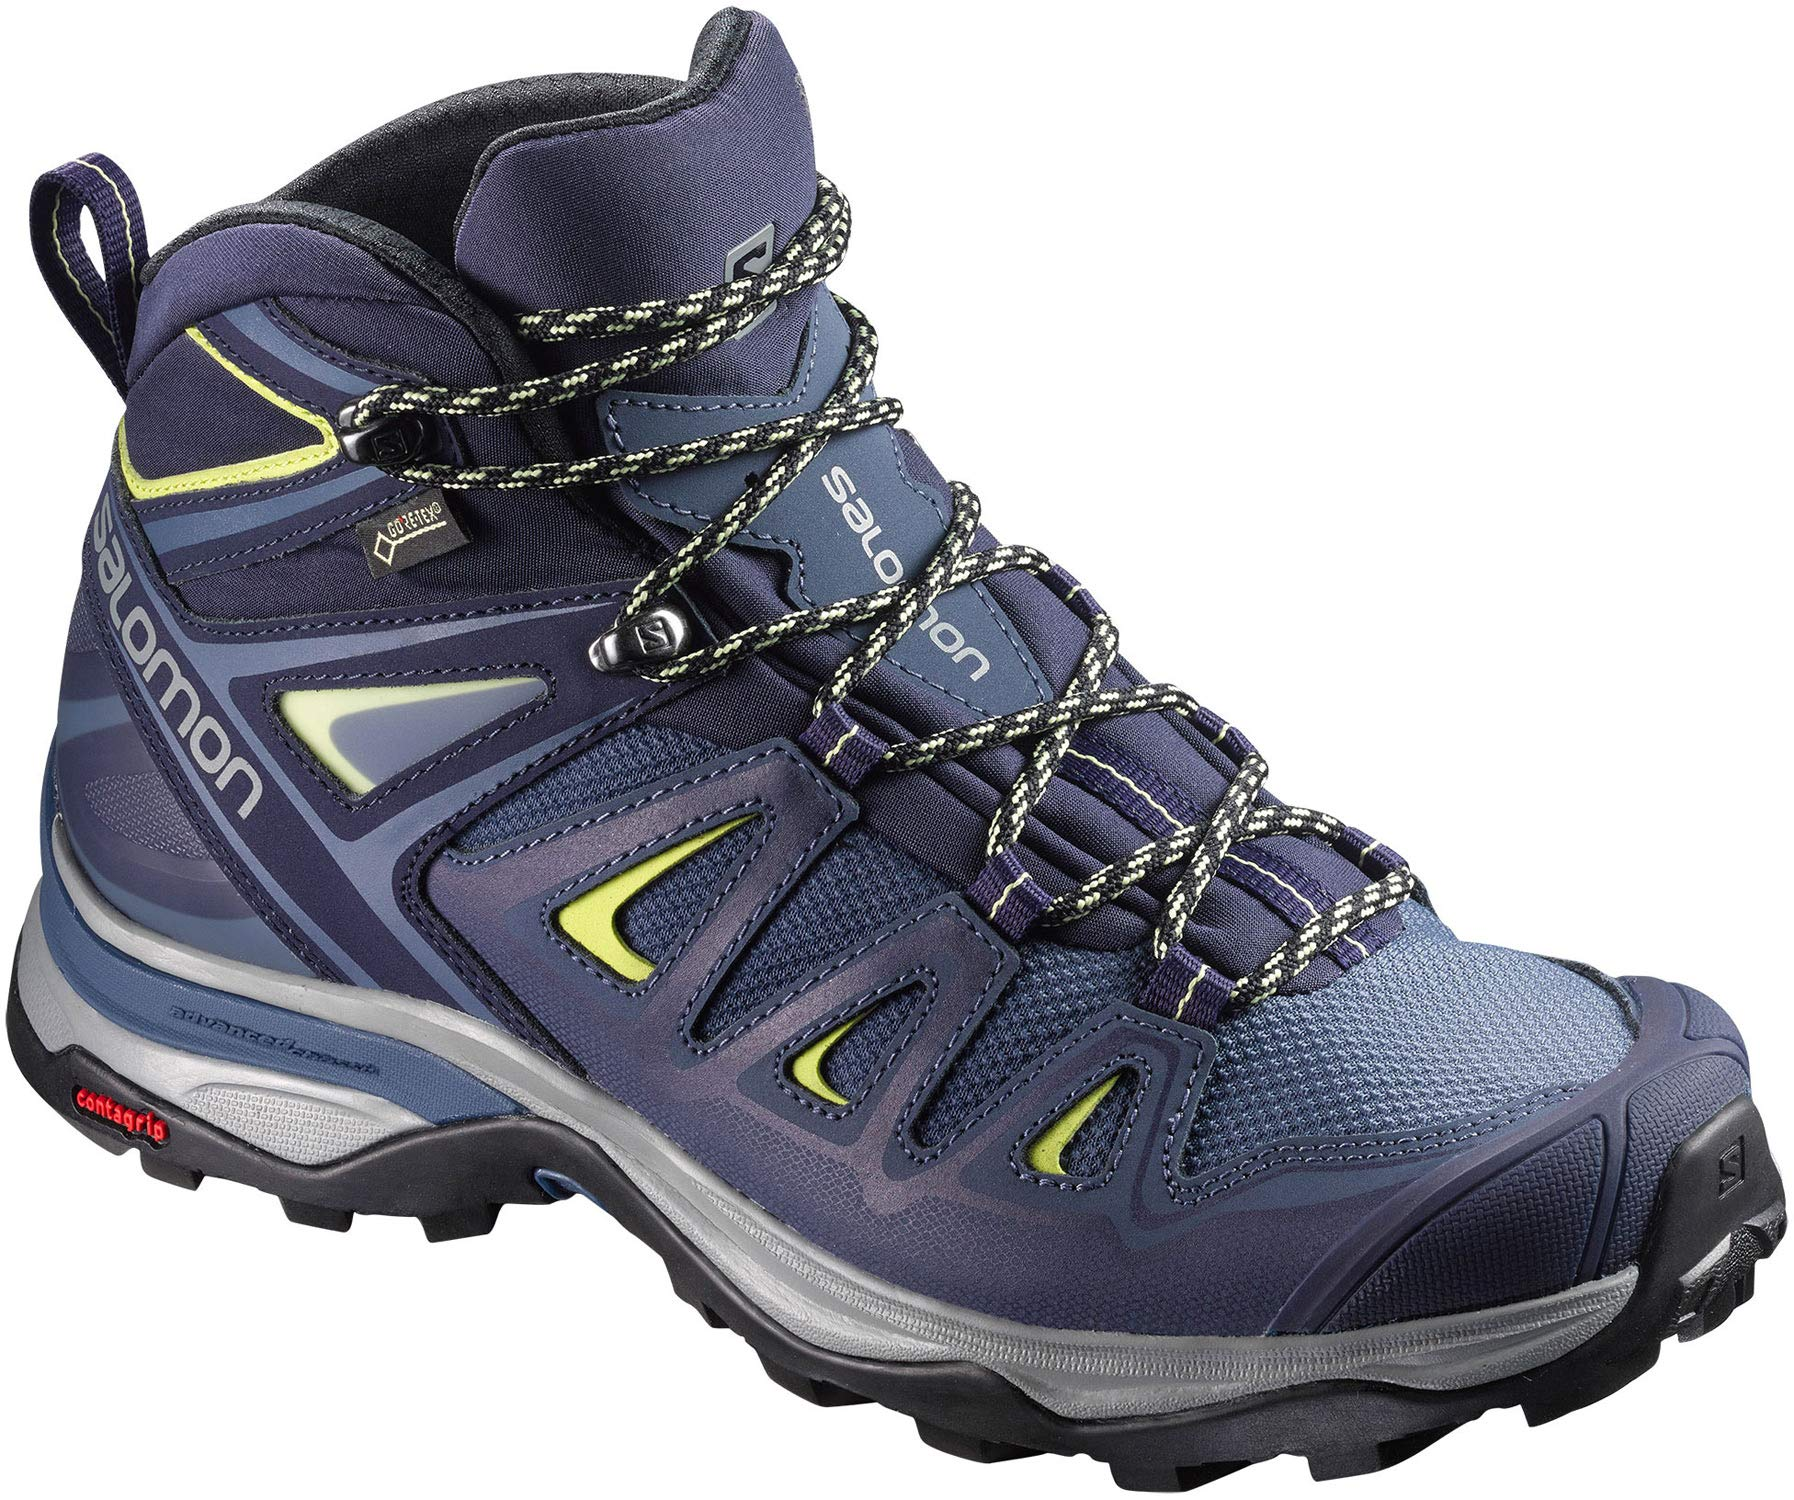 Salomon Women's X Ultra 3 Mid GTX Hiking Boots, Crown Blue/Evening Blue/Sunny Lime, 8 by SALOMON